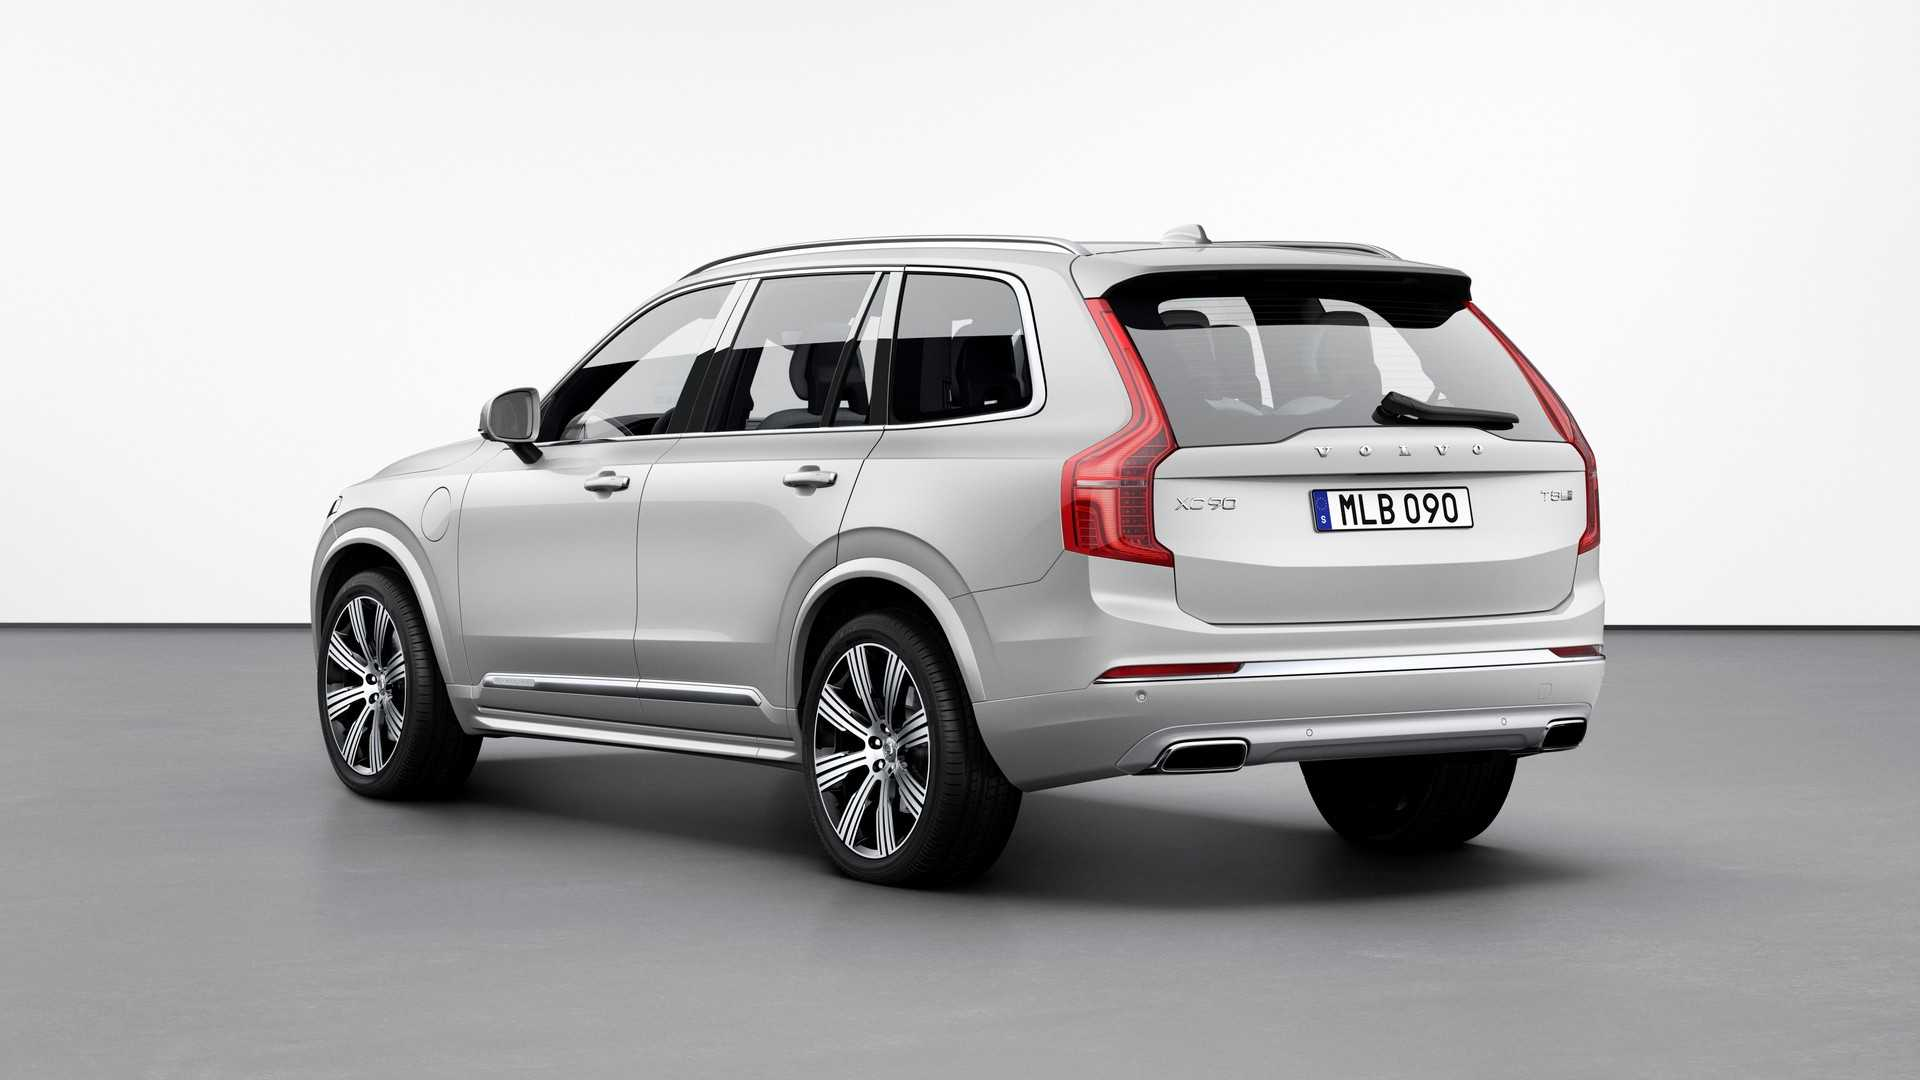 New Volvo Xc90 >> Volvo Xc90 Facelift Unveiled With Kers For Better Fuel Efficiency